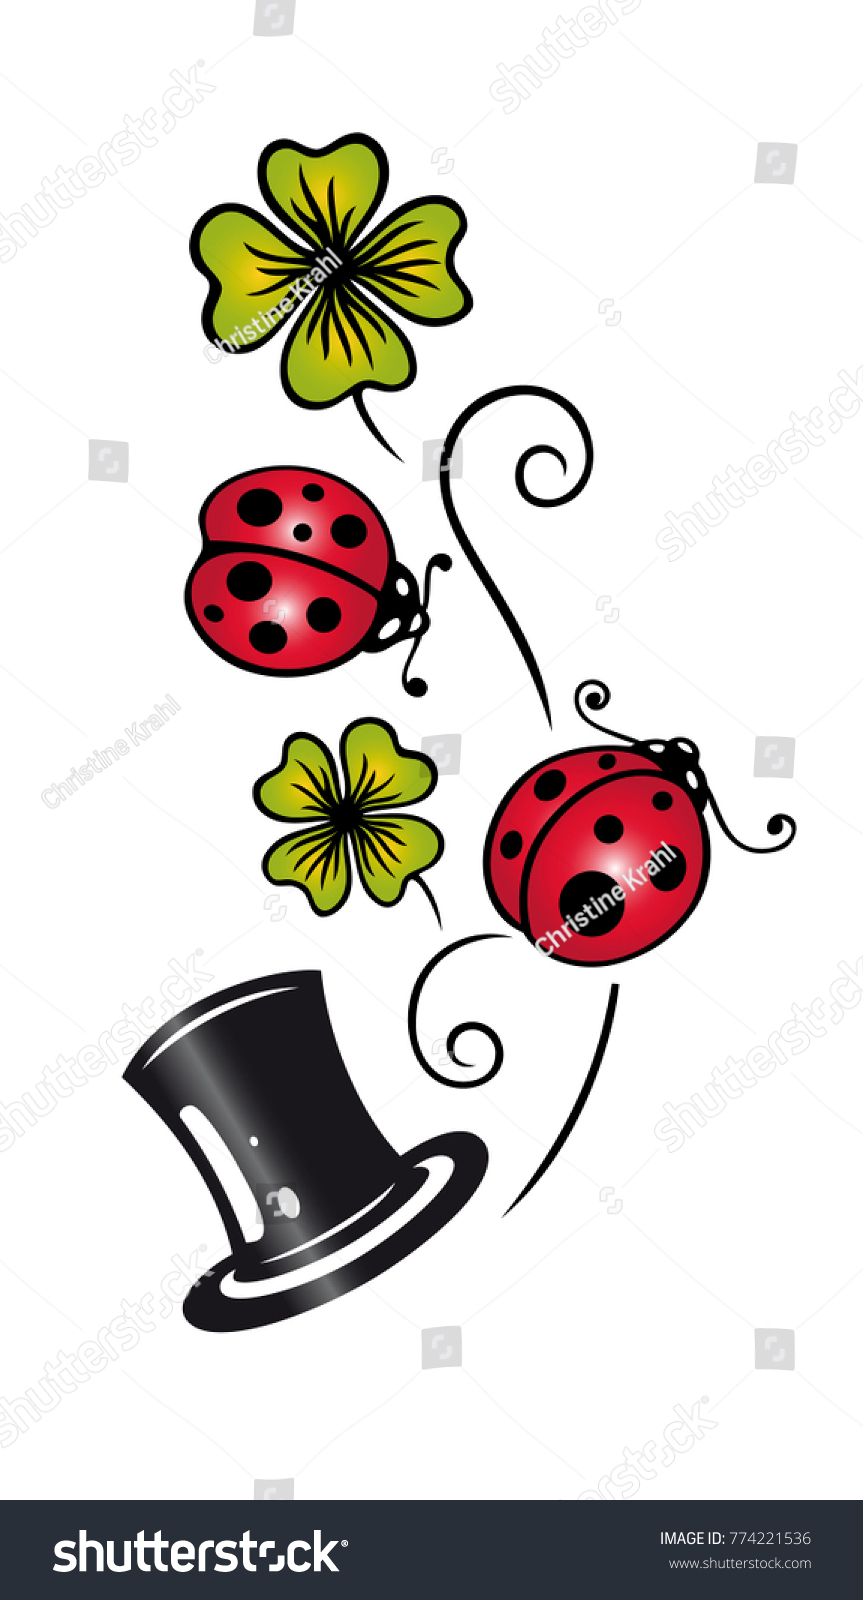 Clover ladybirds cylinder traditional german lucky stock vector clover with ladybirds and cylinder traditional german lucky charm symbols biocorpaavc Image collections